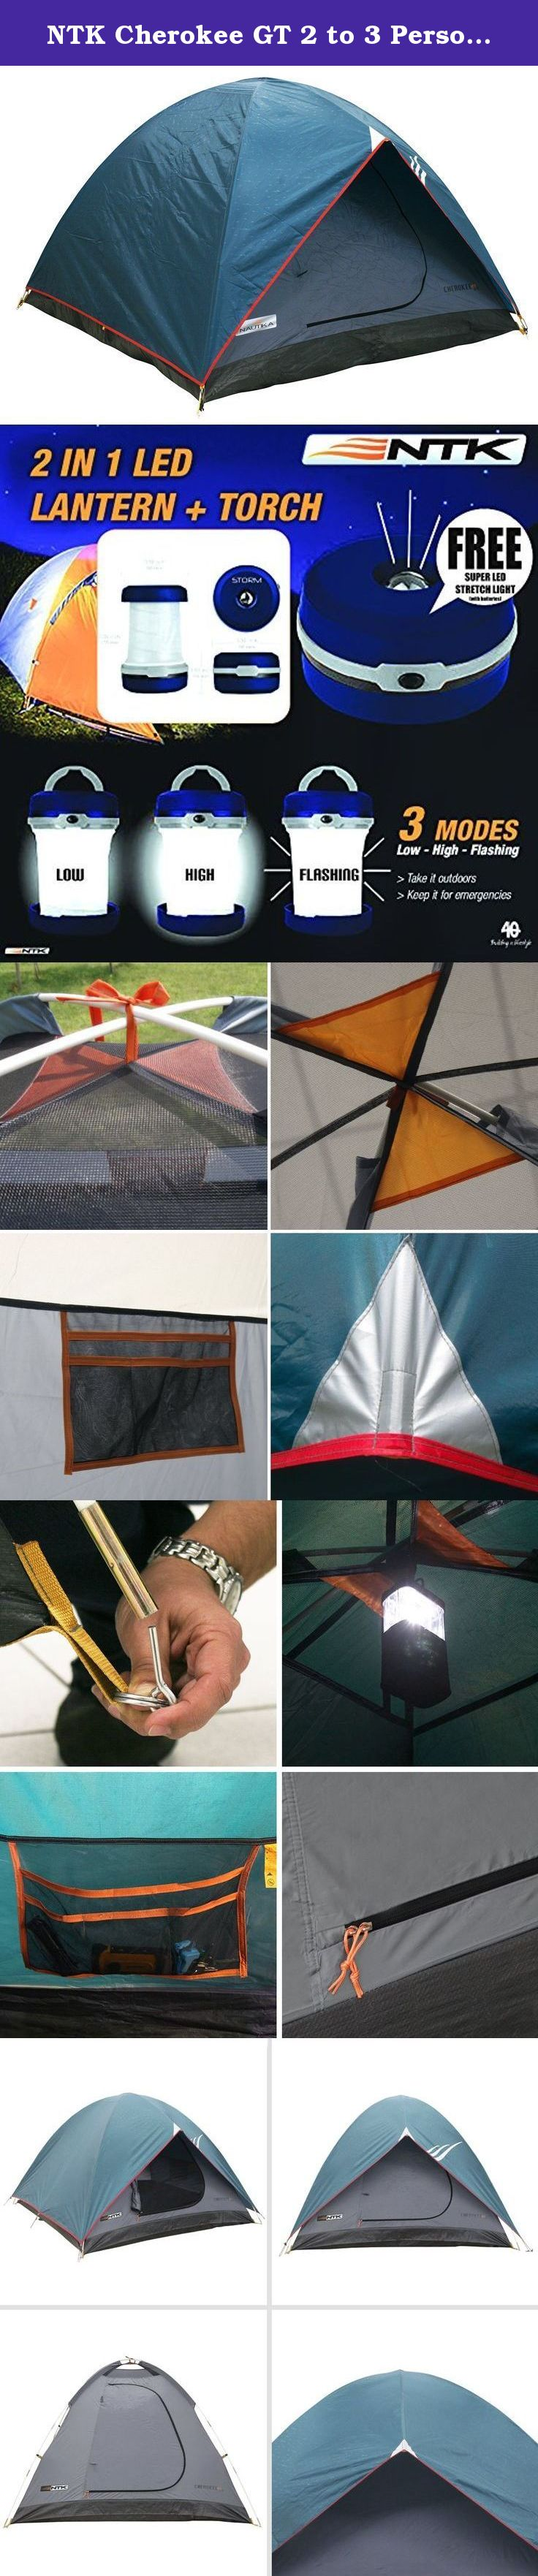 ntk cherokee gt 2 to 3 person 7 by 5 foot sport camping dome tent 100